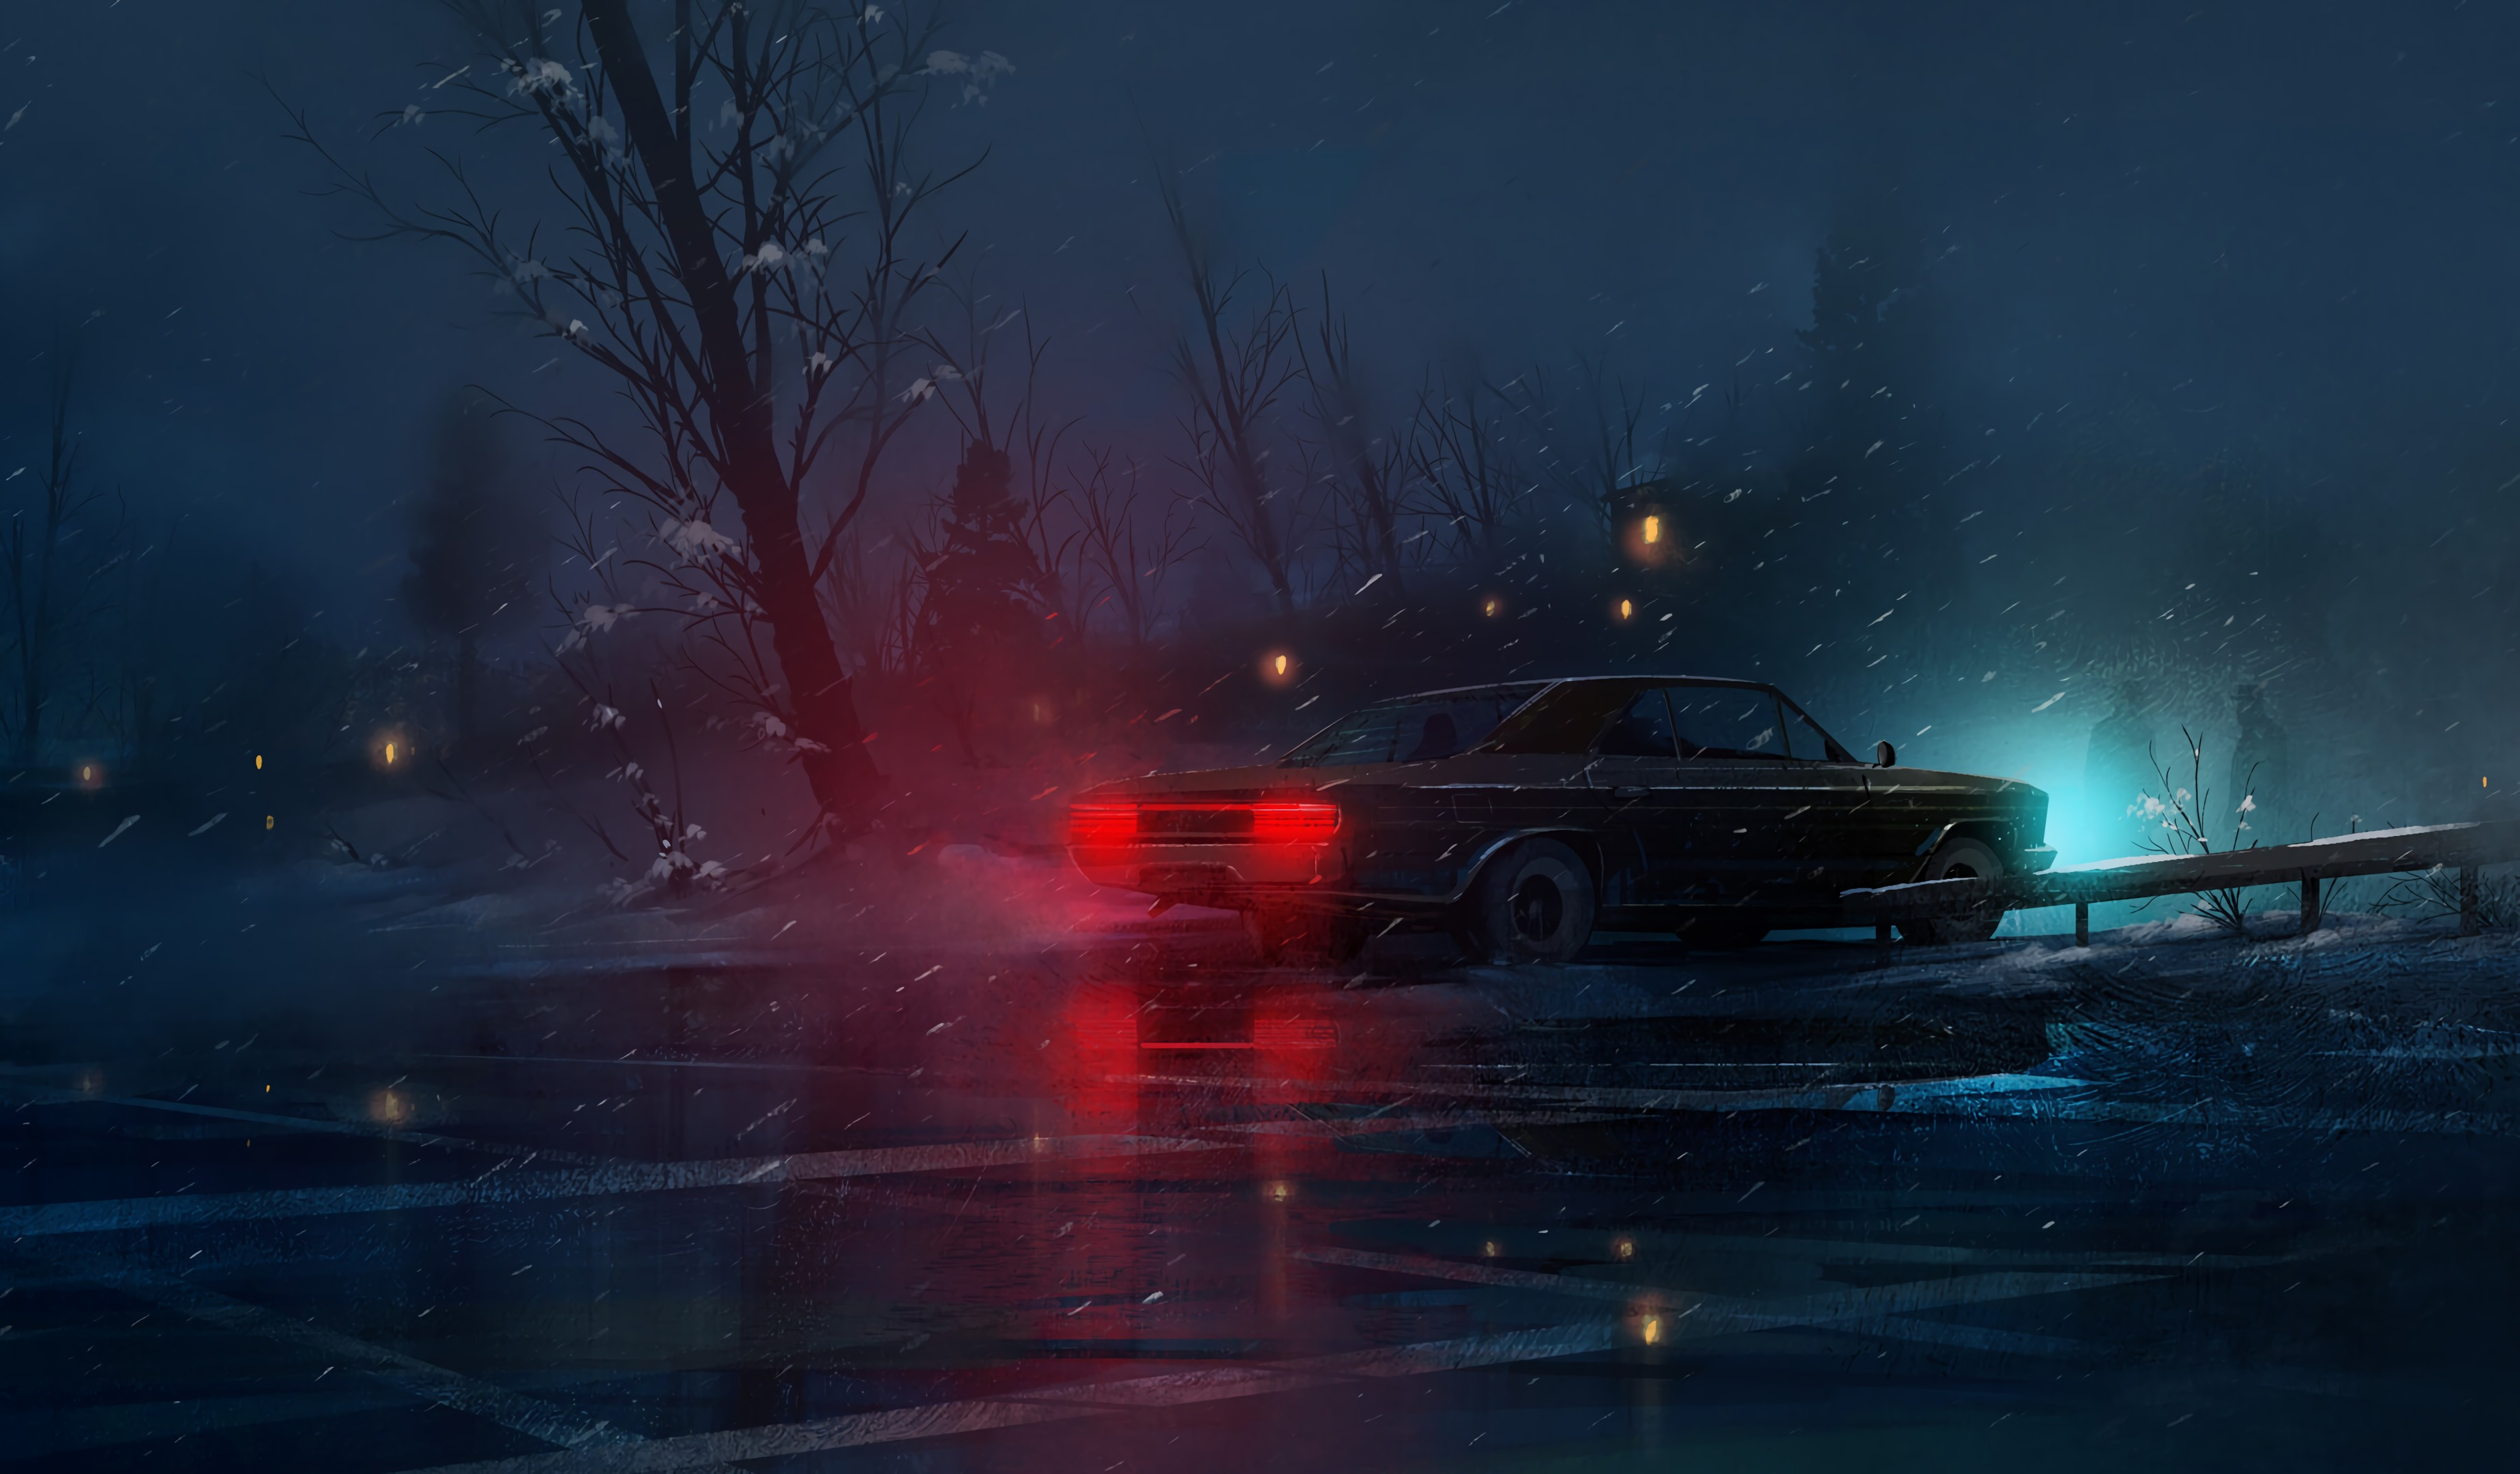 120730 download wallpaper Light, Art, Night, Snow, Shine, Car, Machine screensavers and pictures for free